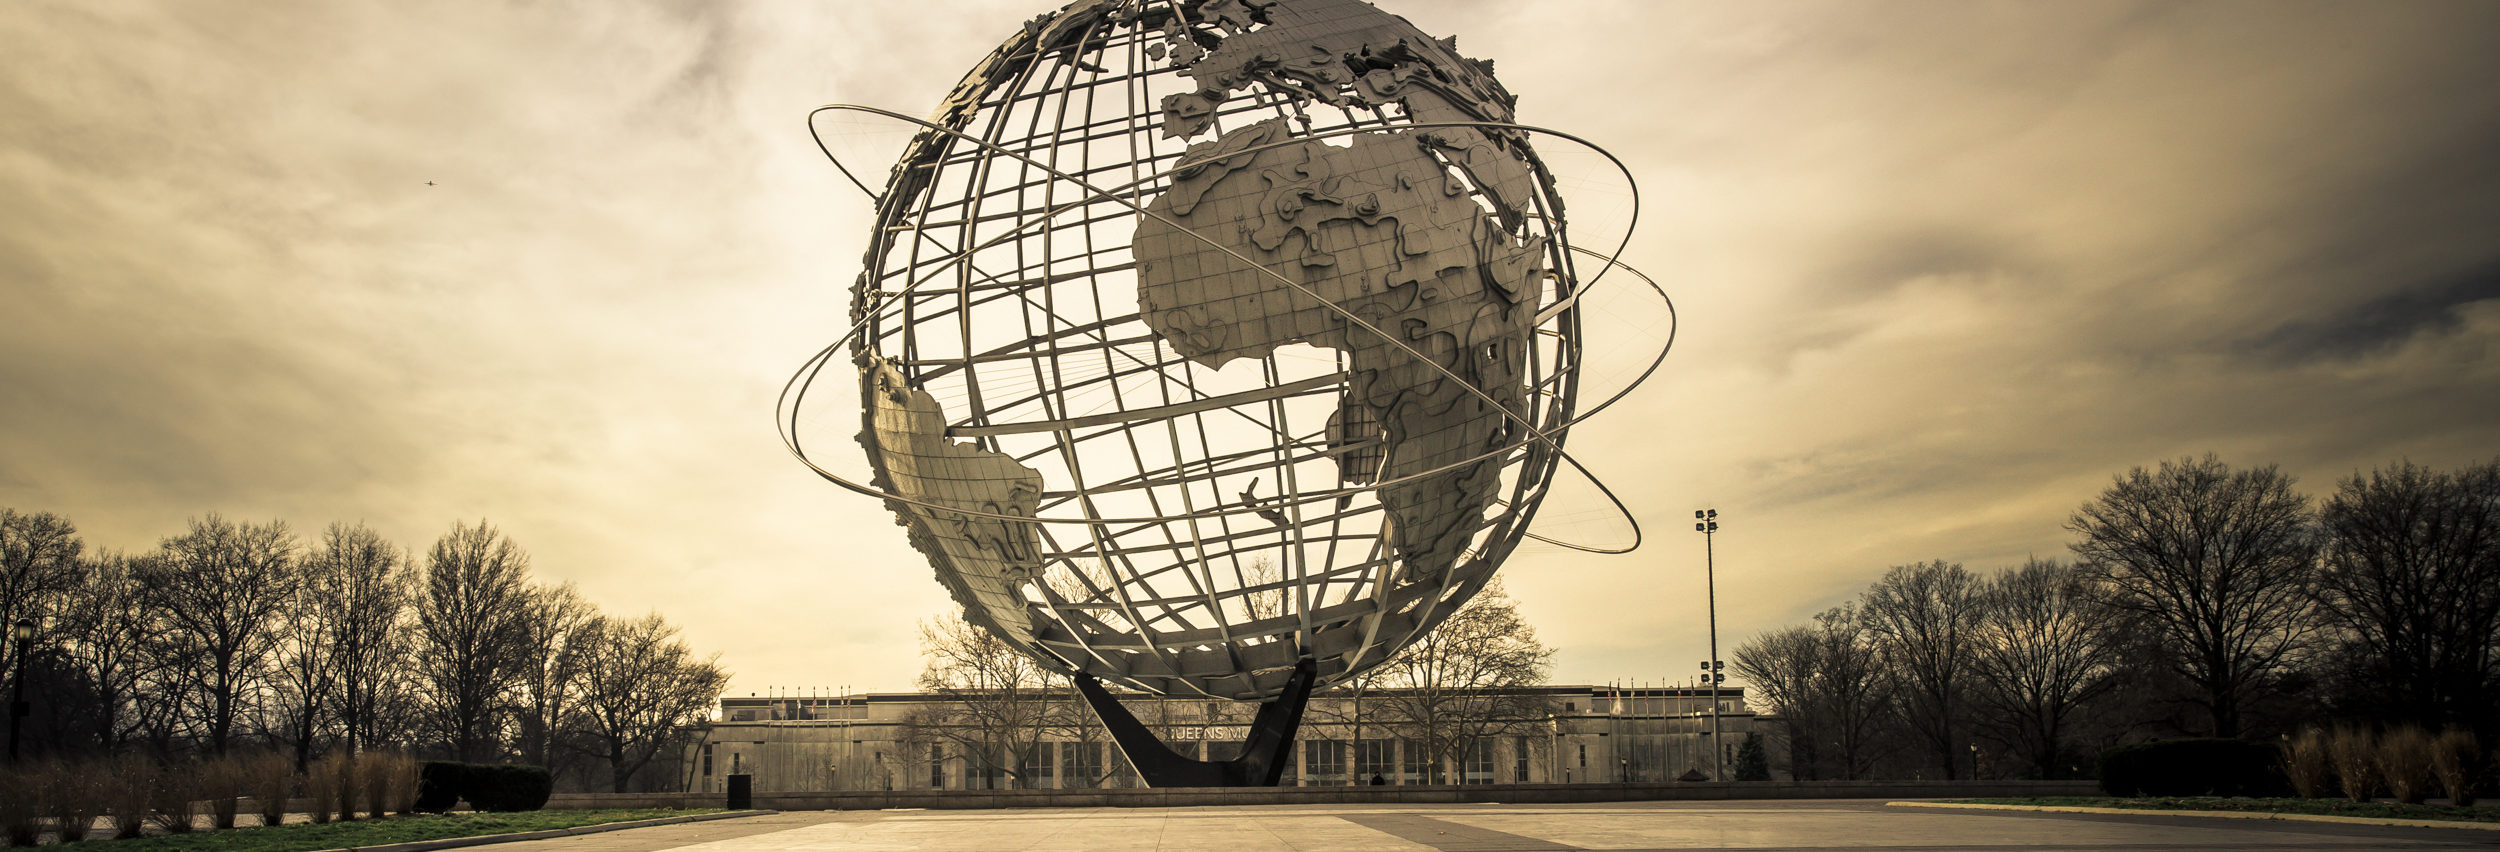 NEW YORK CITY - JANUARY 7, 2016: Vintage Unisphere at Flushing Meadows-Corona Park in Queens was installed for the 1964 World's Fair. - Image [Shutterstock]